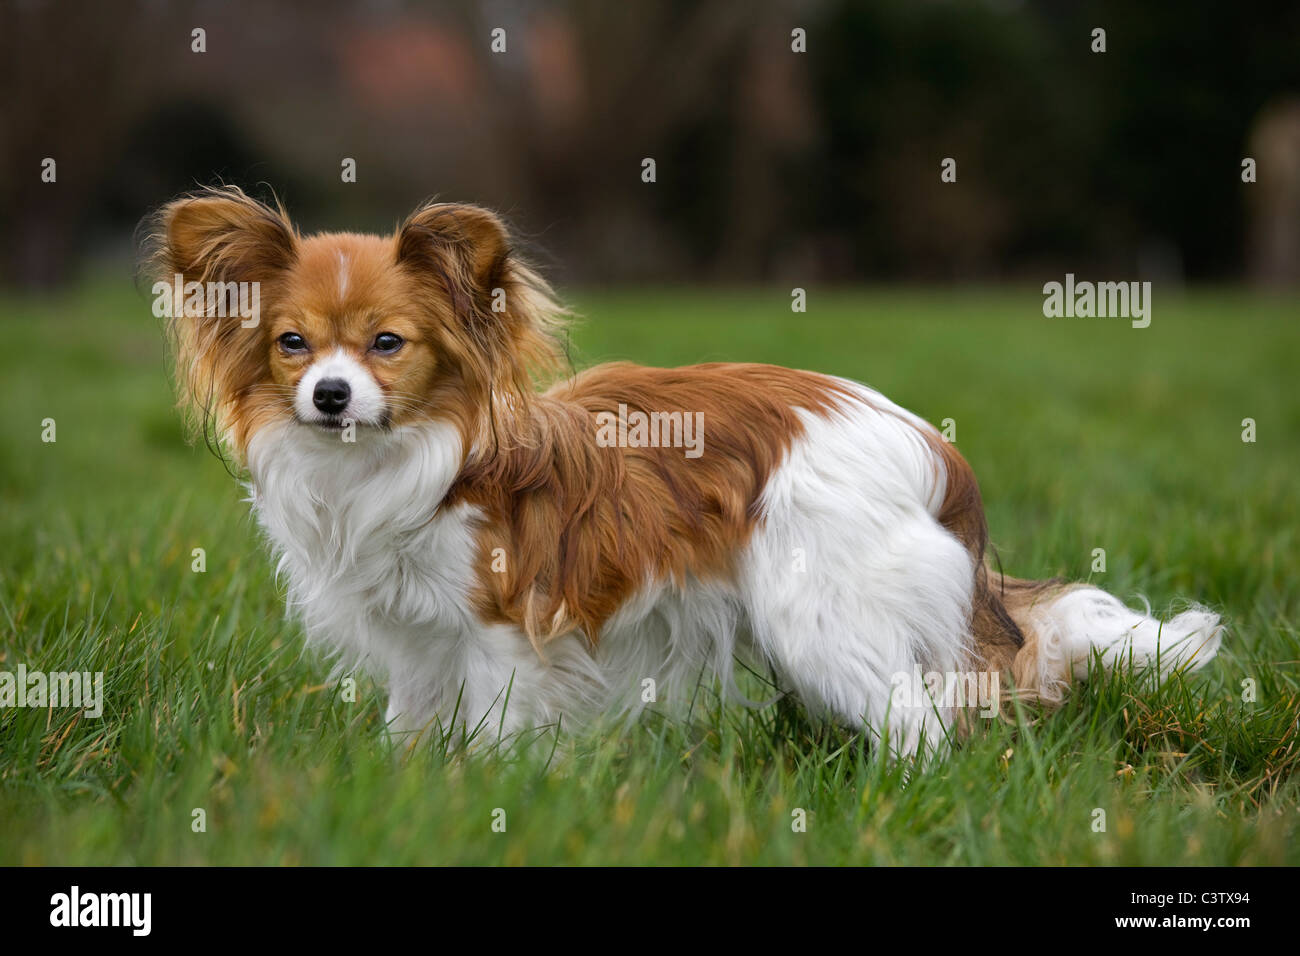 Papillon dog (Canis lupus familiaris) on lawn in garden - Stock Image